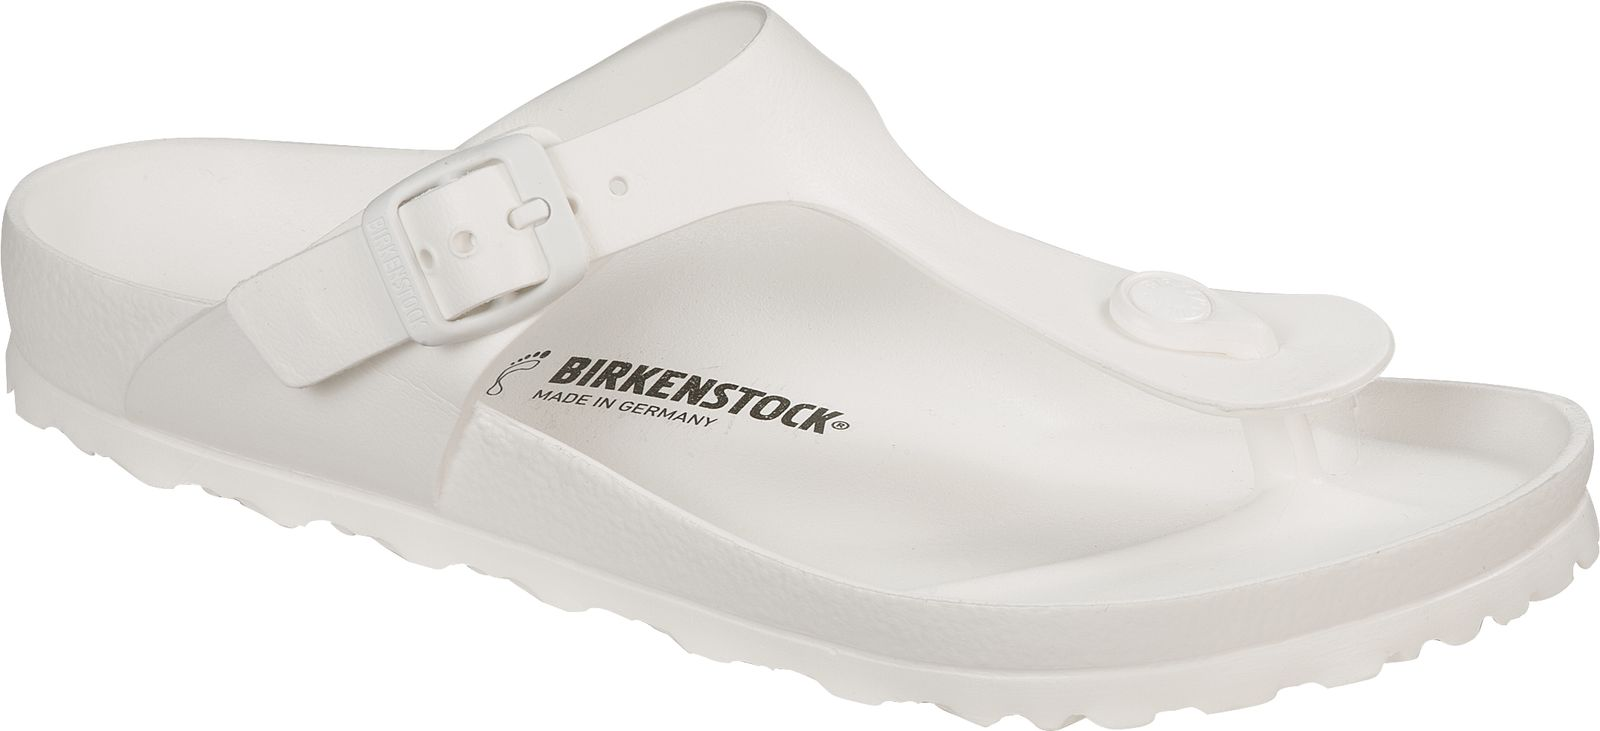 Gizeh EVA - The Birkenstock Signature Thong in White